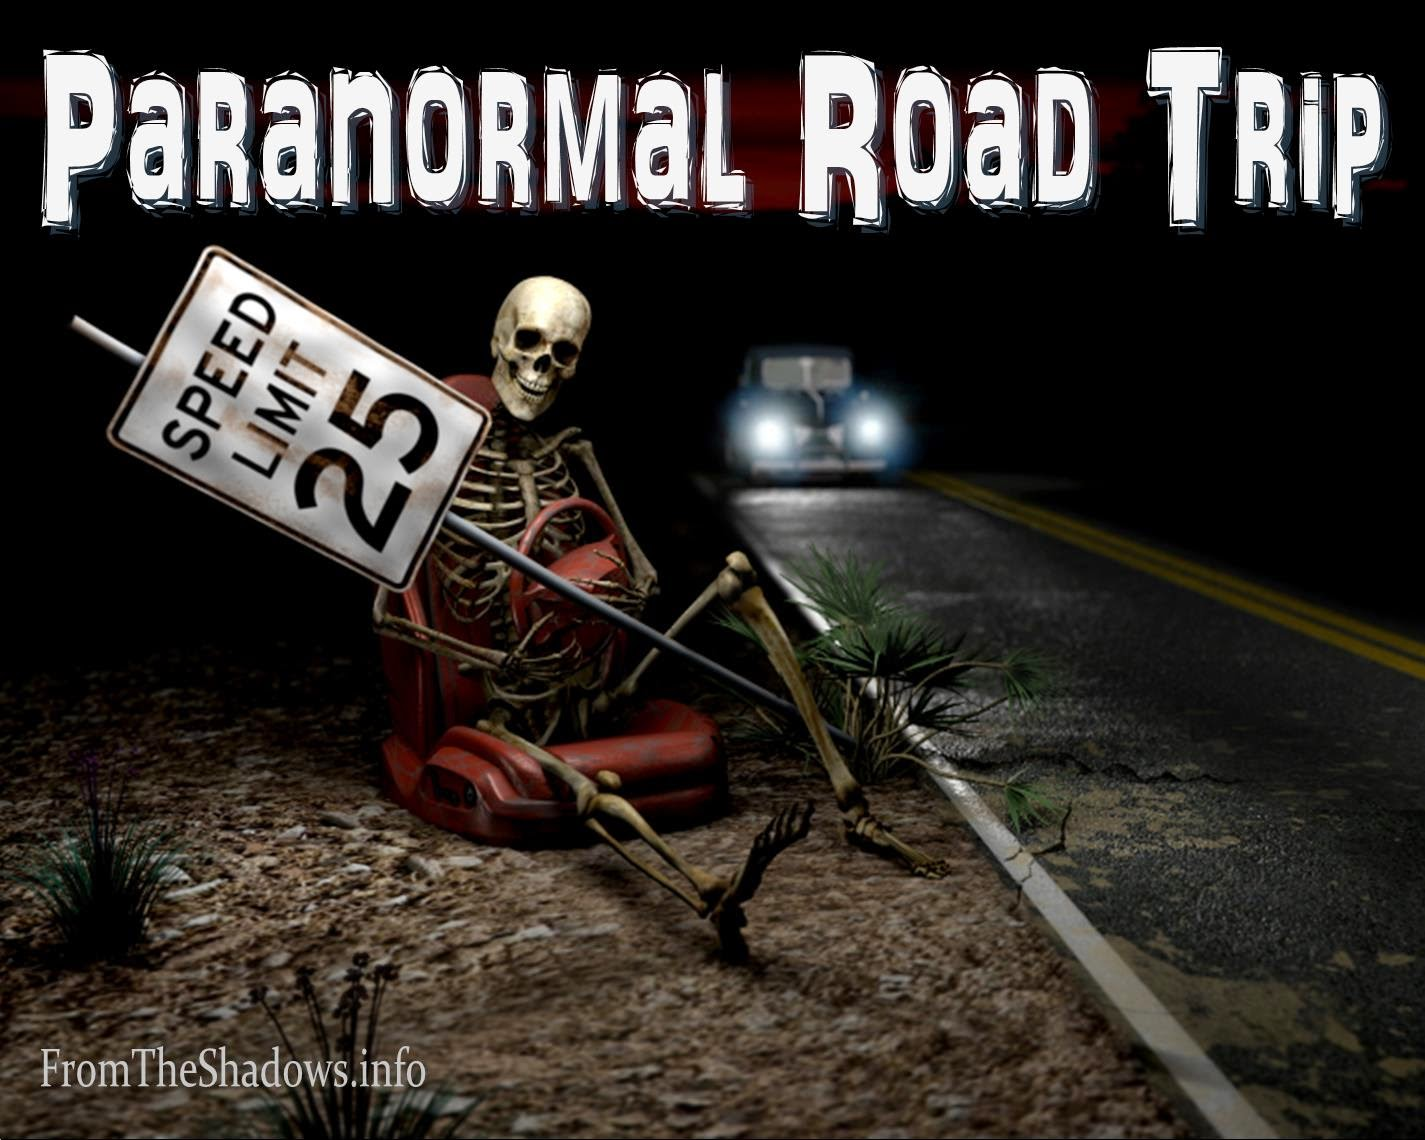 Paranormal Road Trip: Destination Boston With Skylar Dorset author of Otherworld series